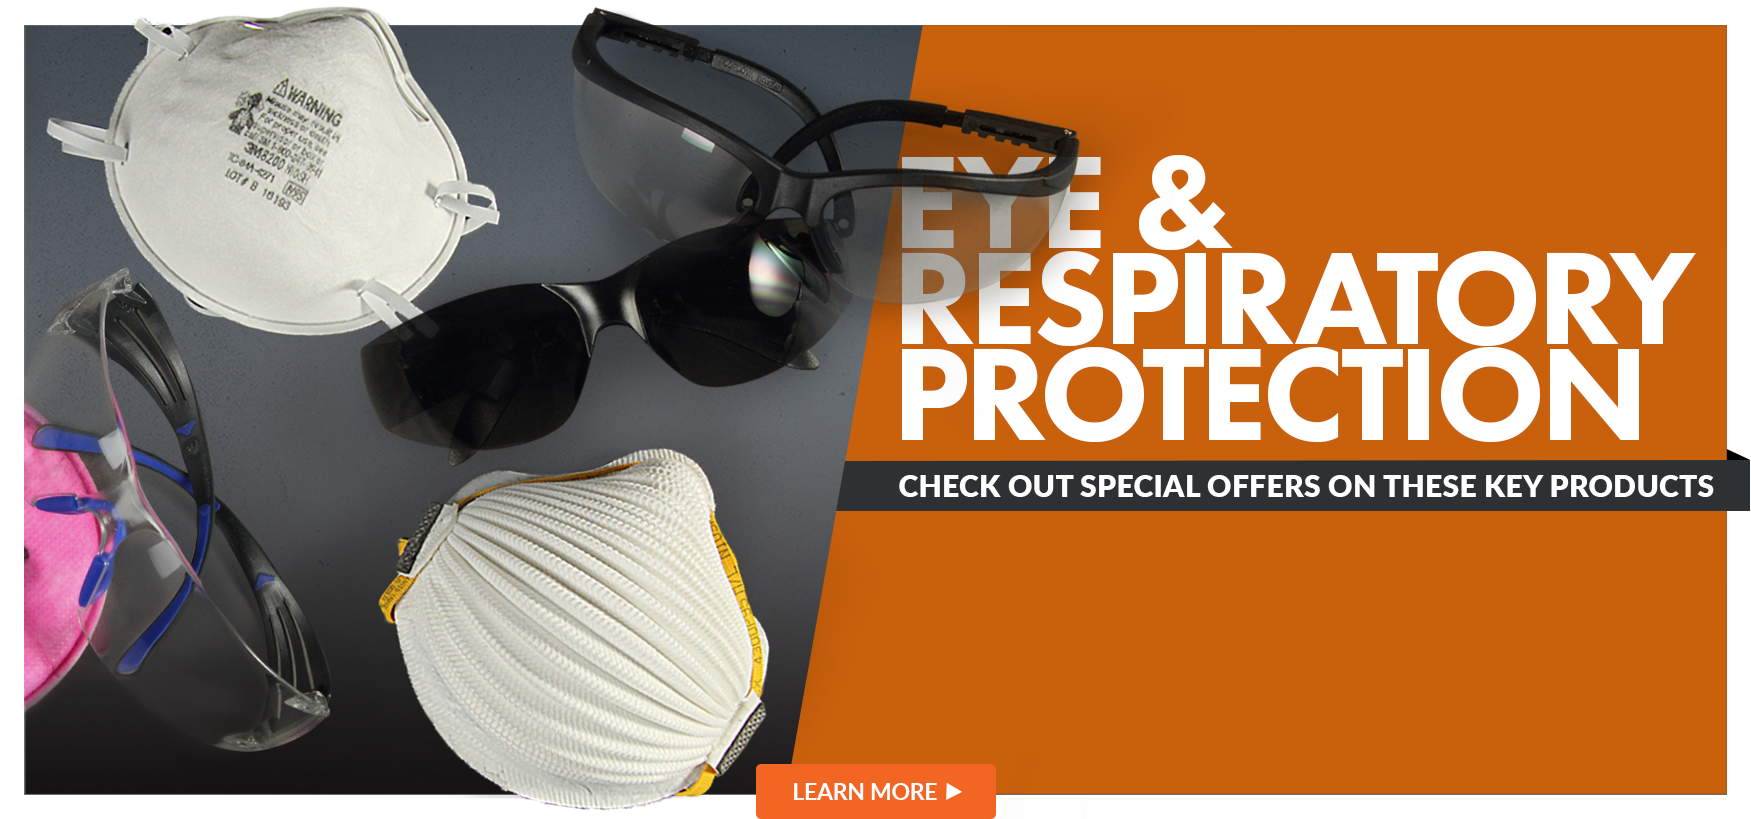 Eye and Respiratory Protection, Check out Special Offers on these key products